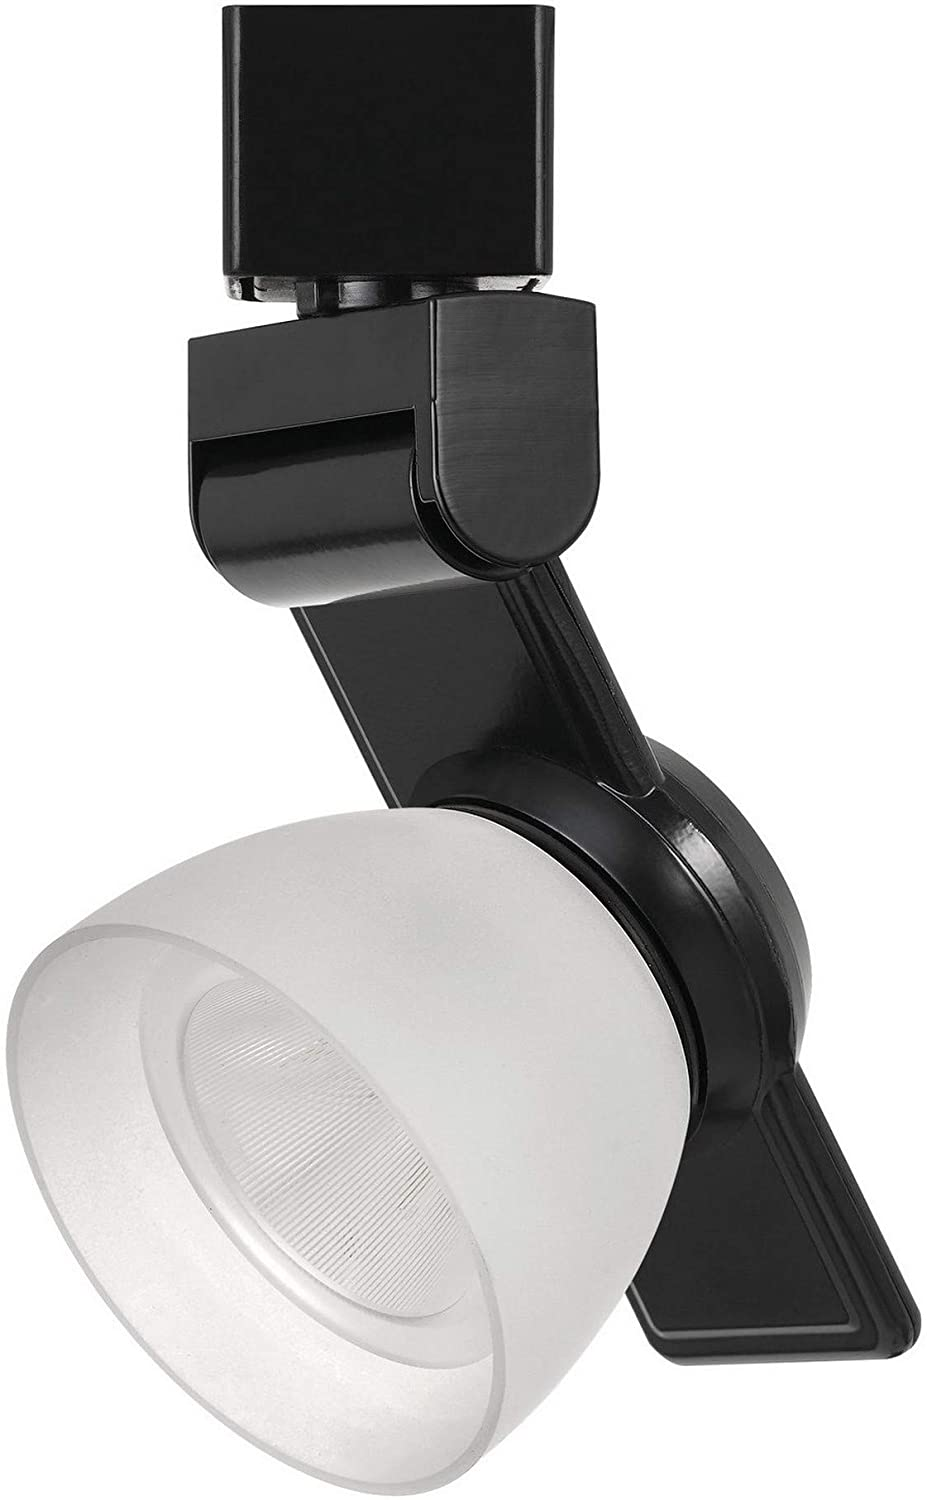 Benjara 12W Integrated LED Track Fixture with Polycarbonate Head, Black and White